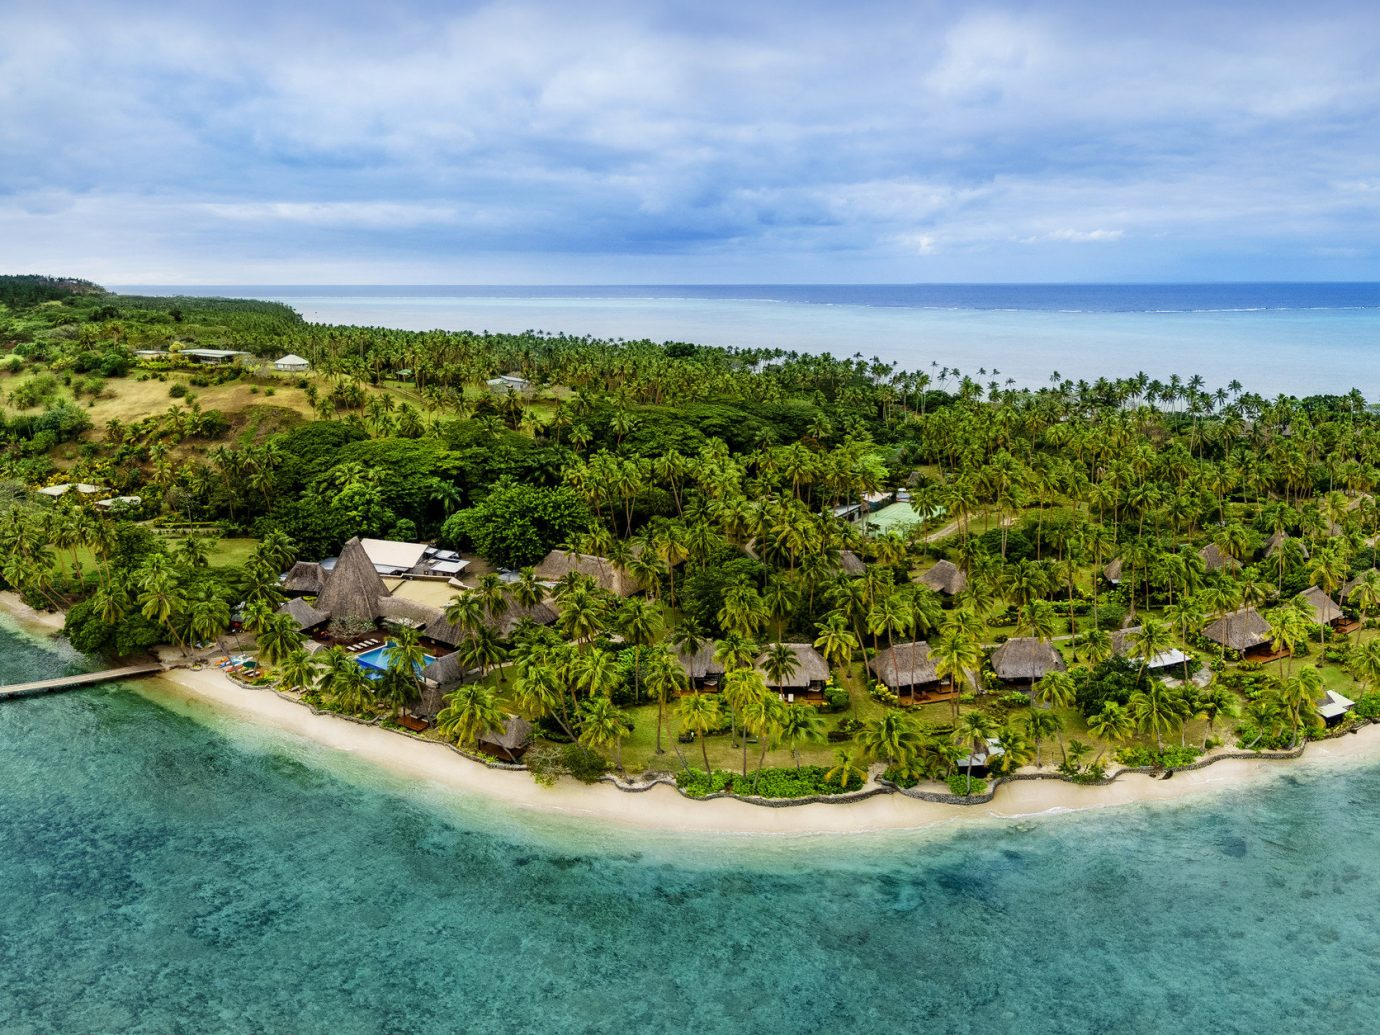 All-Inclusive Resorts Boutique Hotels Hotels Romance water sky outdoor coastal and oceanic landforms water resources Island promontory tropics photography islet Sea shore Coast archipelago Lagoon bay caribbean Ocean inlet Lake tourism cape panorama aerial photography peninsula reef